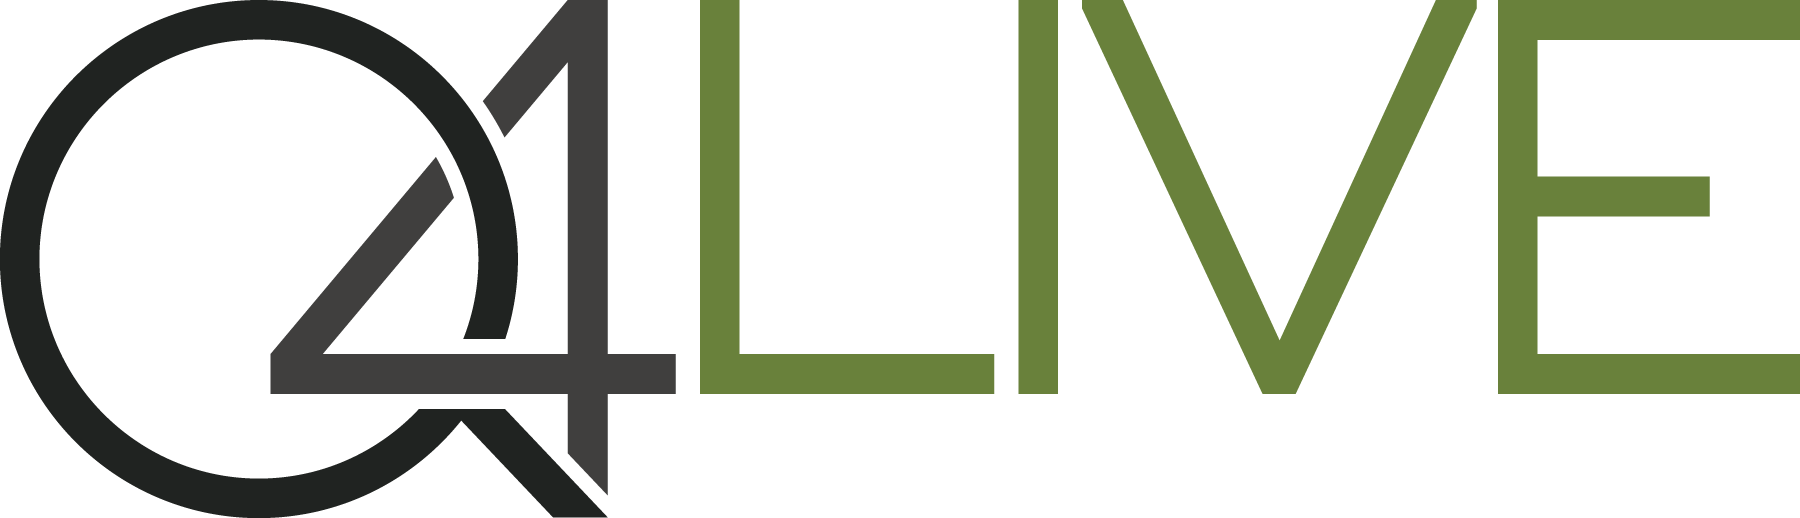 Q4Live logo - networking conference